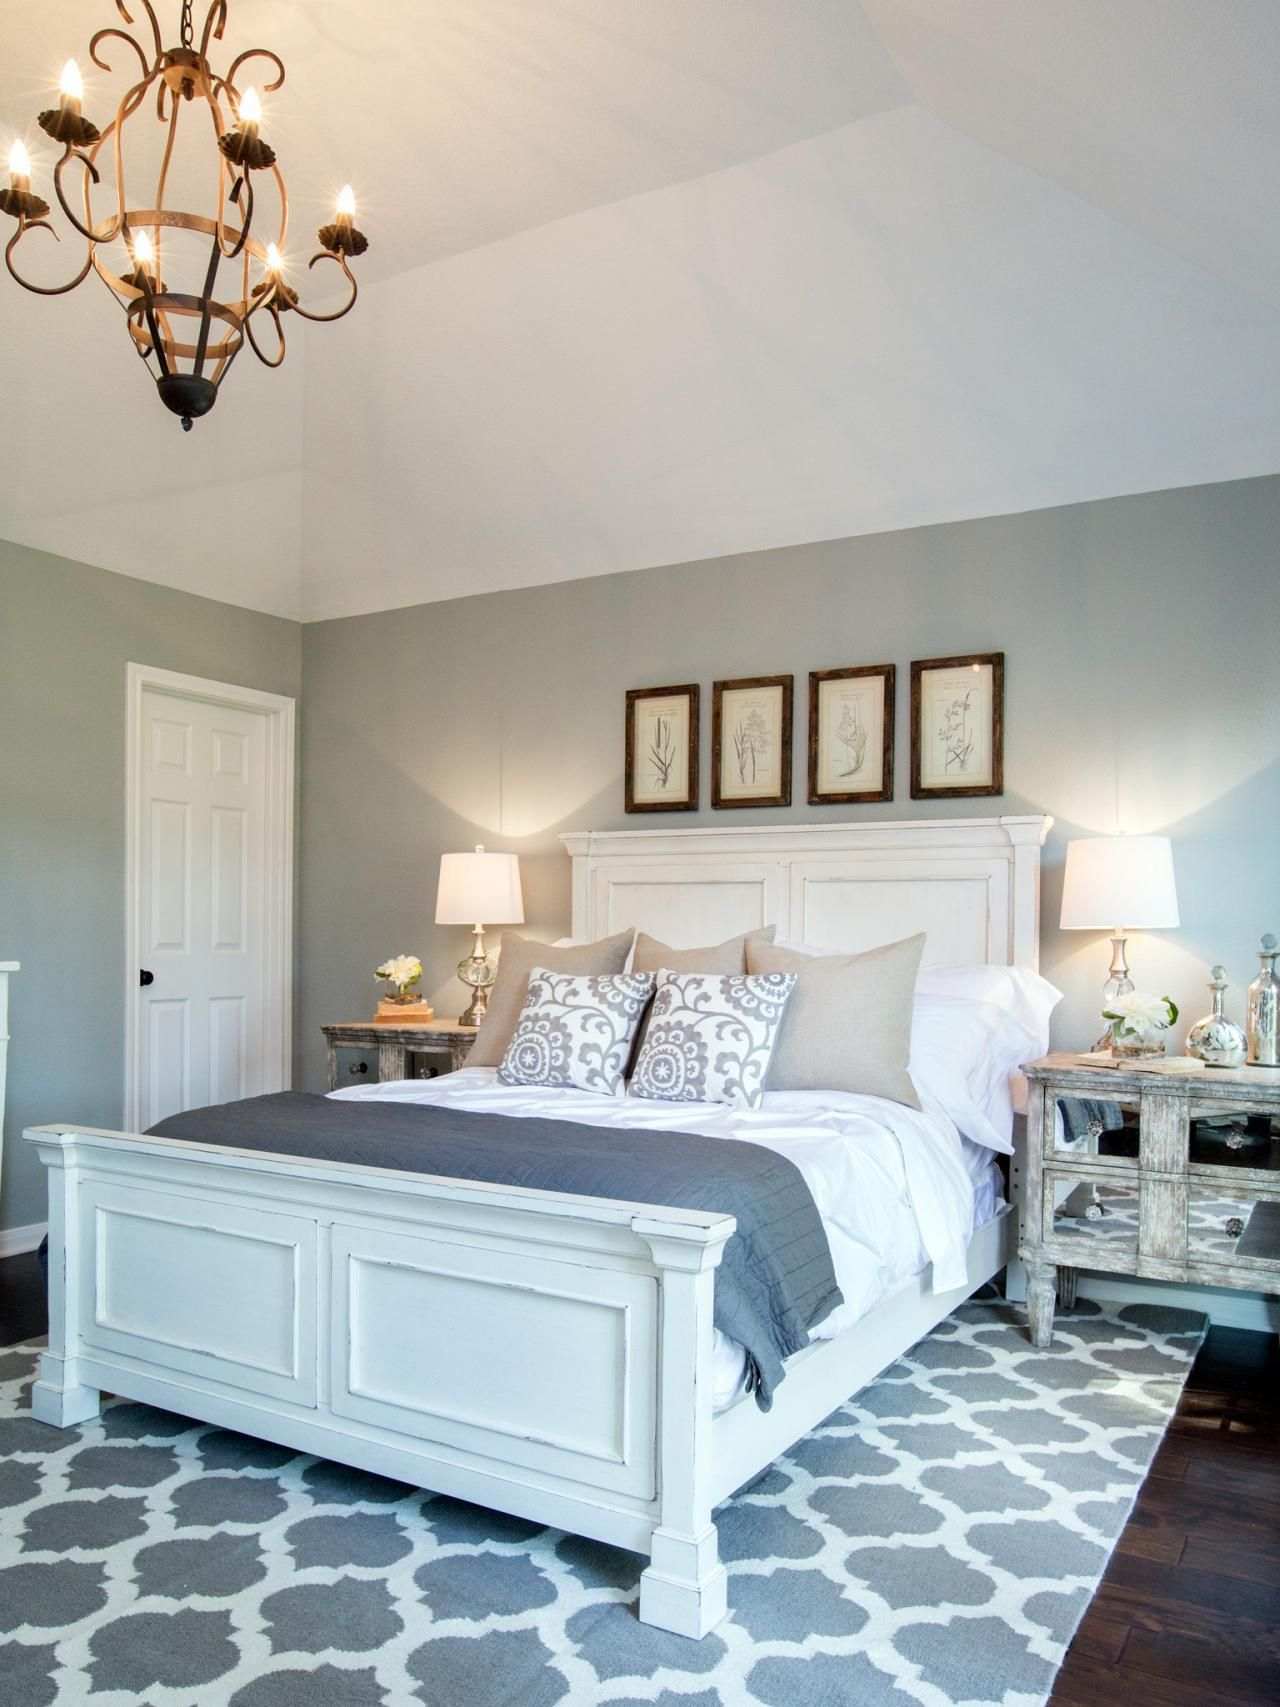 Pics Of Bedroom Master Bedroom Love The Greys The Airy Feel For The Home